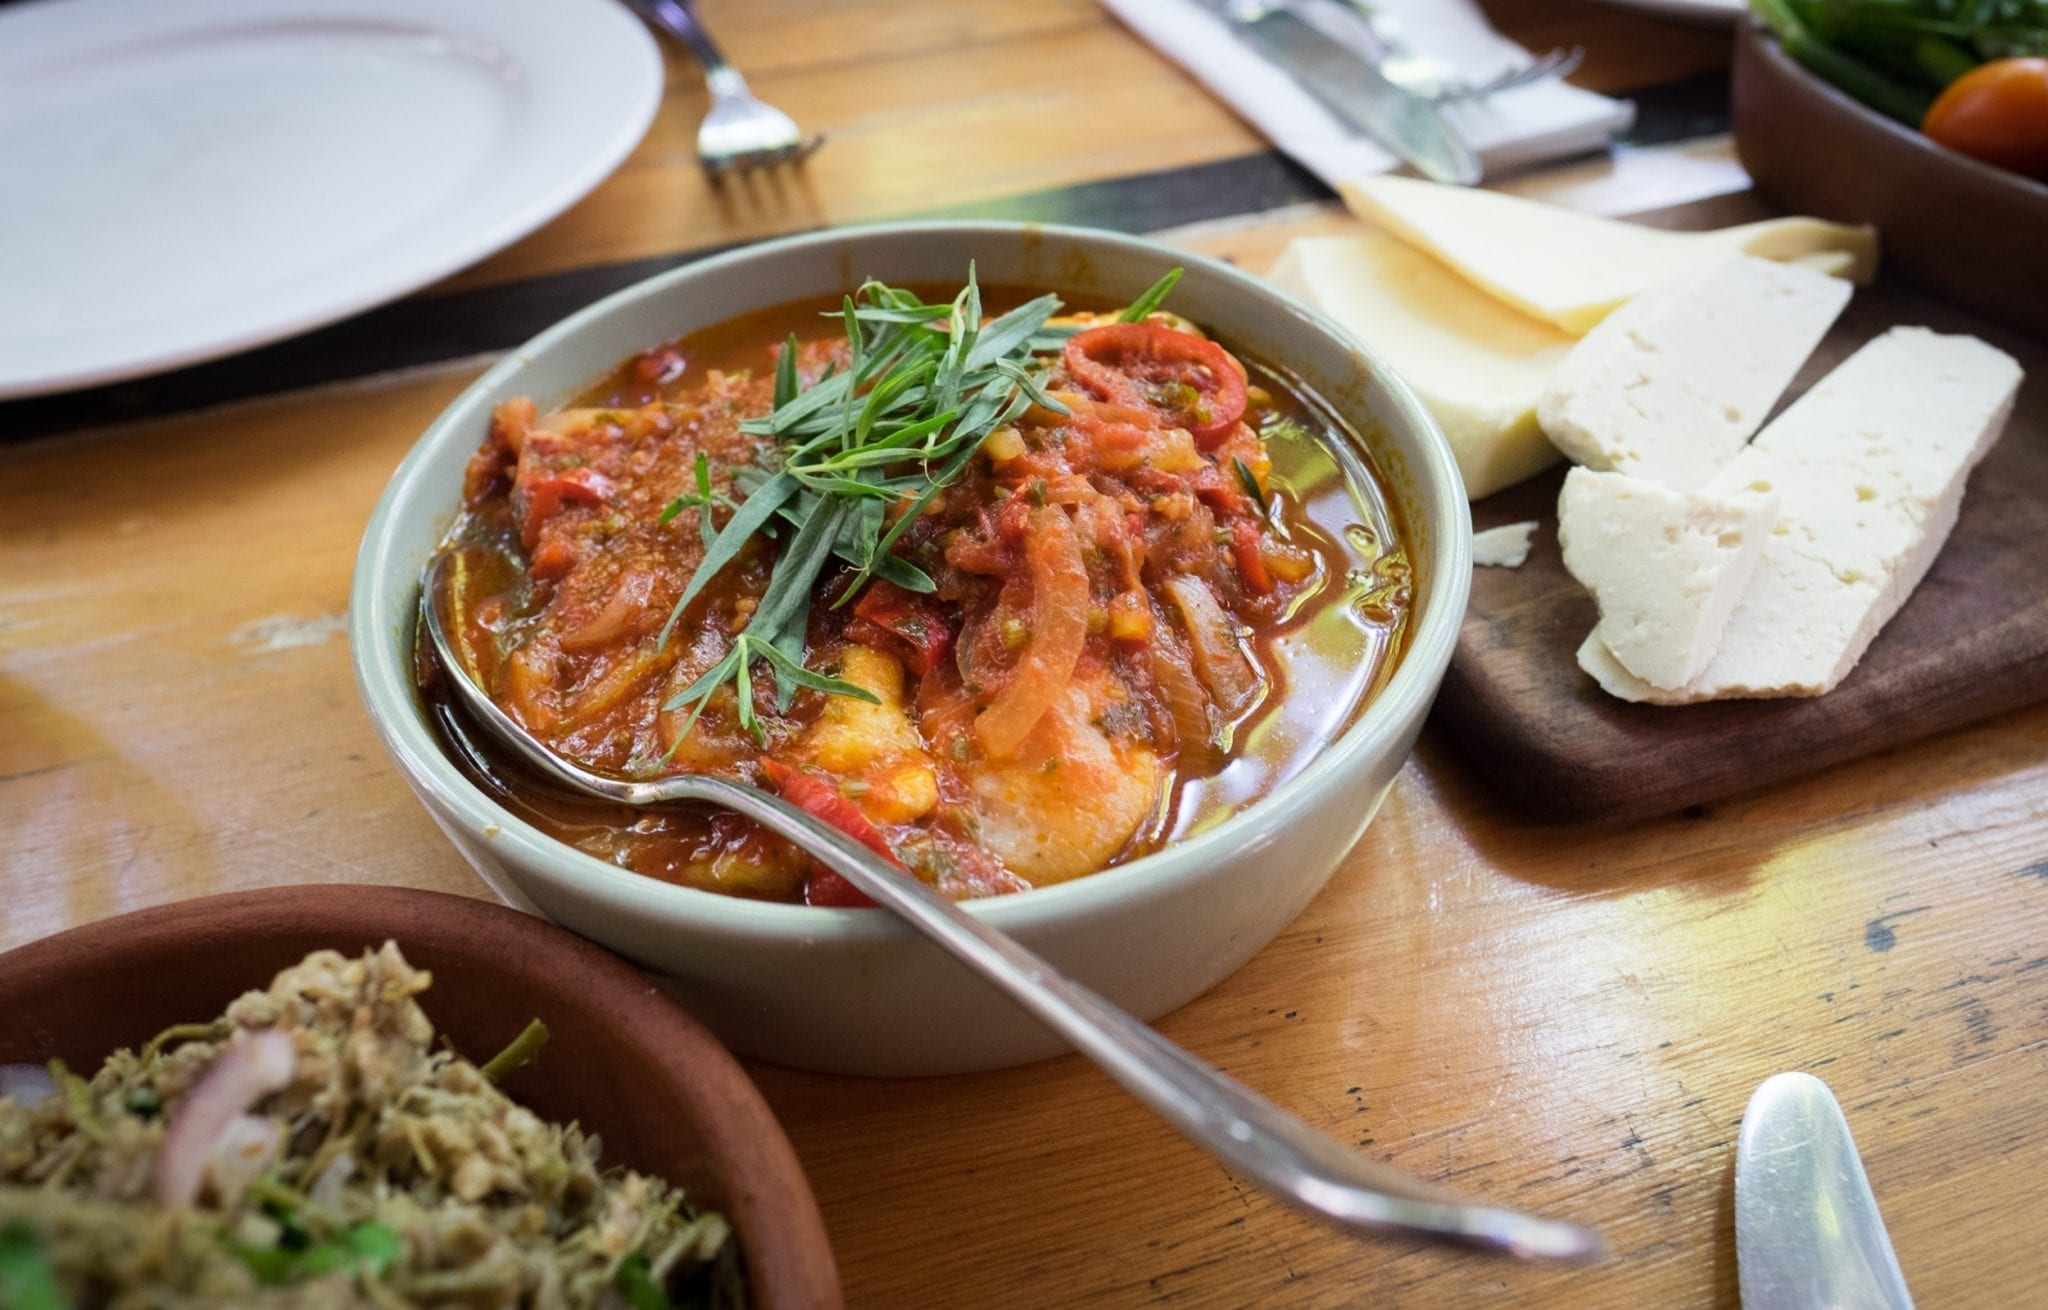 A bowl filled with chicken, tomatoes and onions and topped with a spring of rosemary.